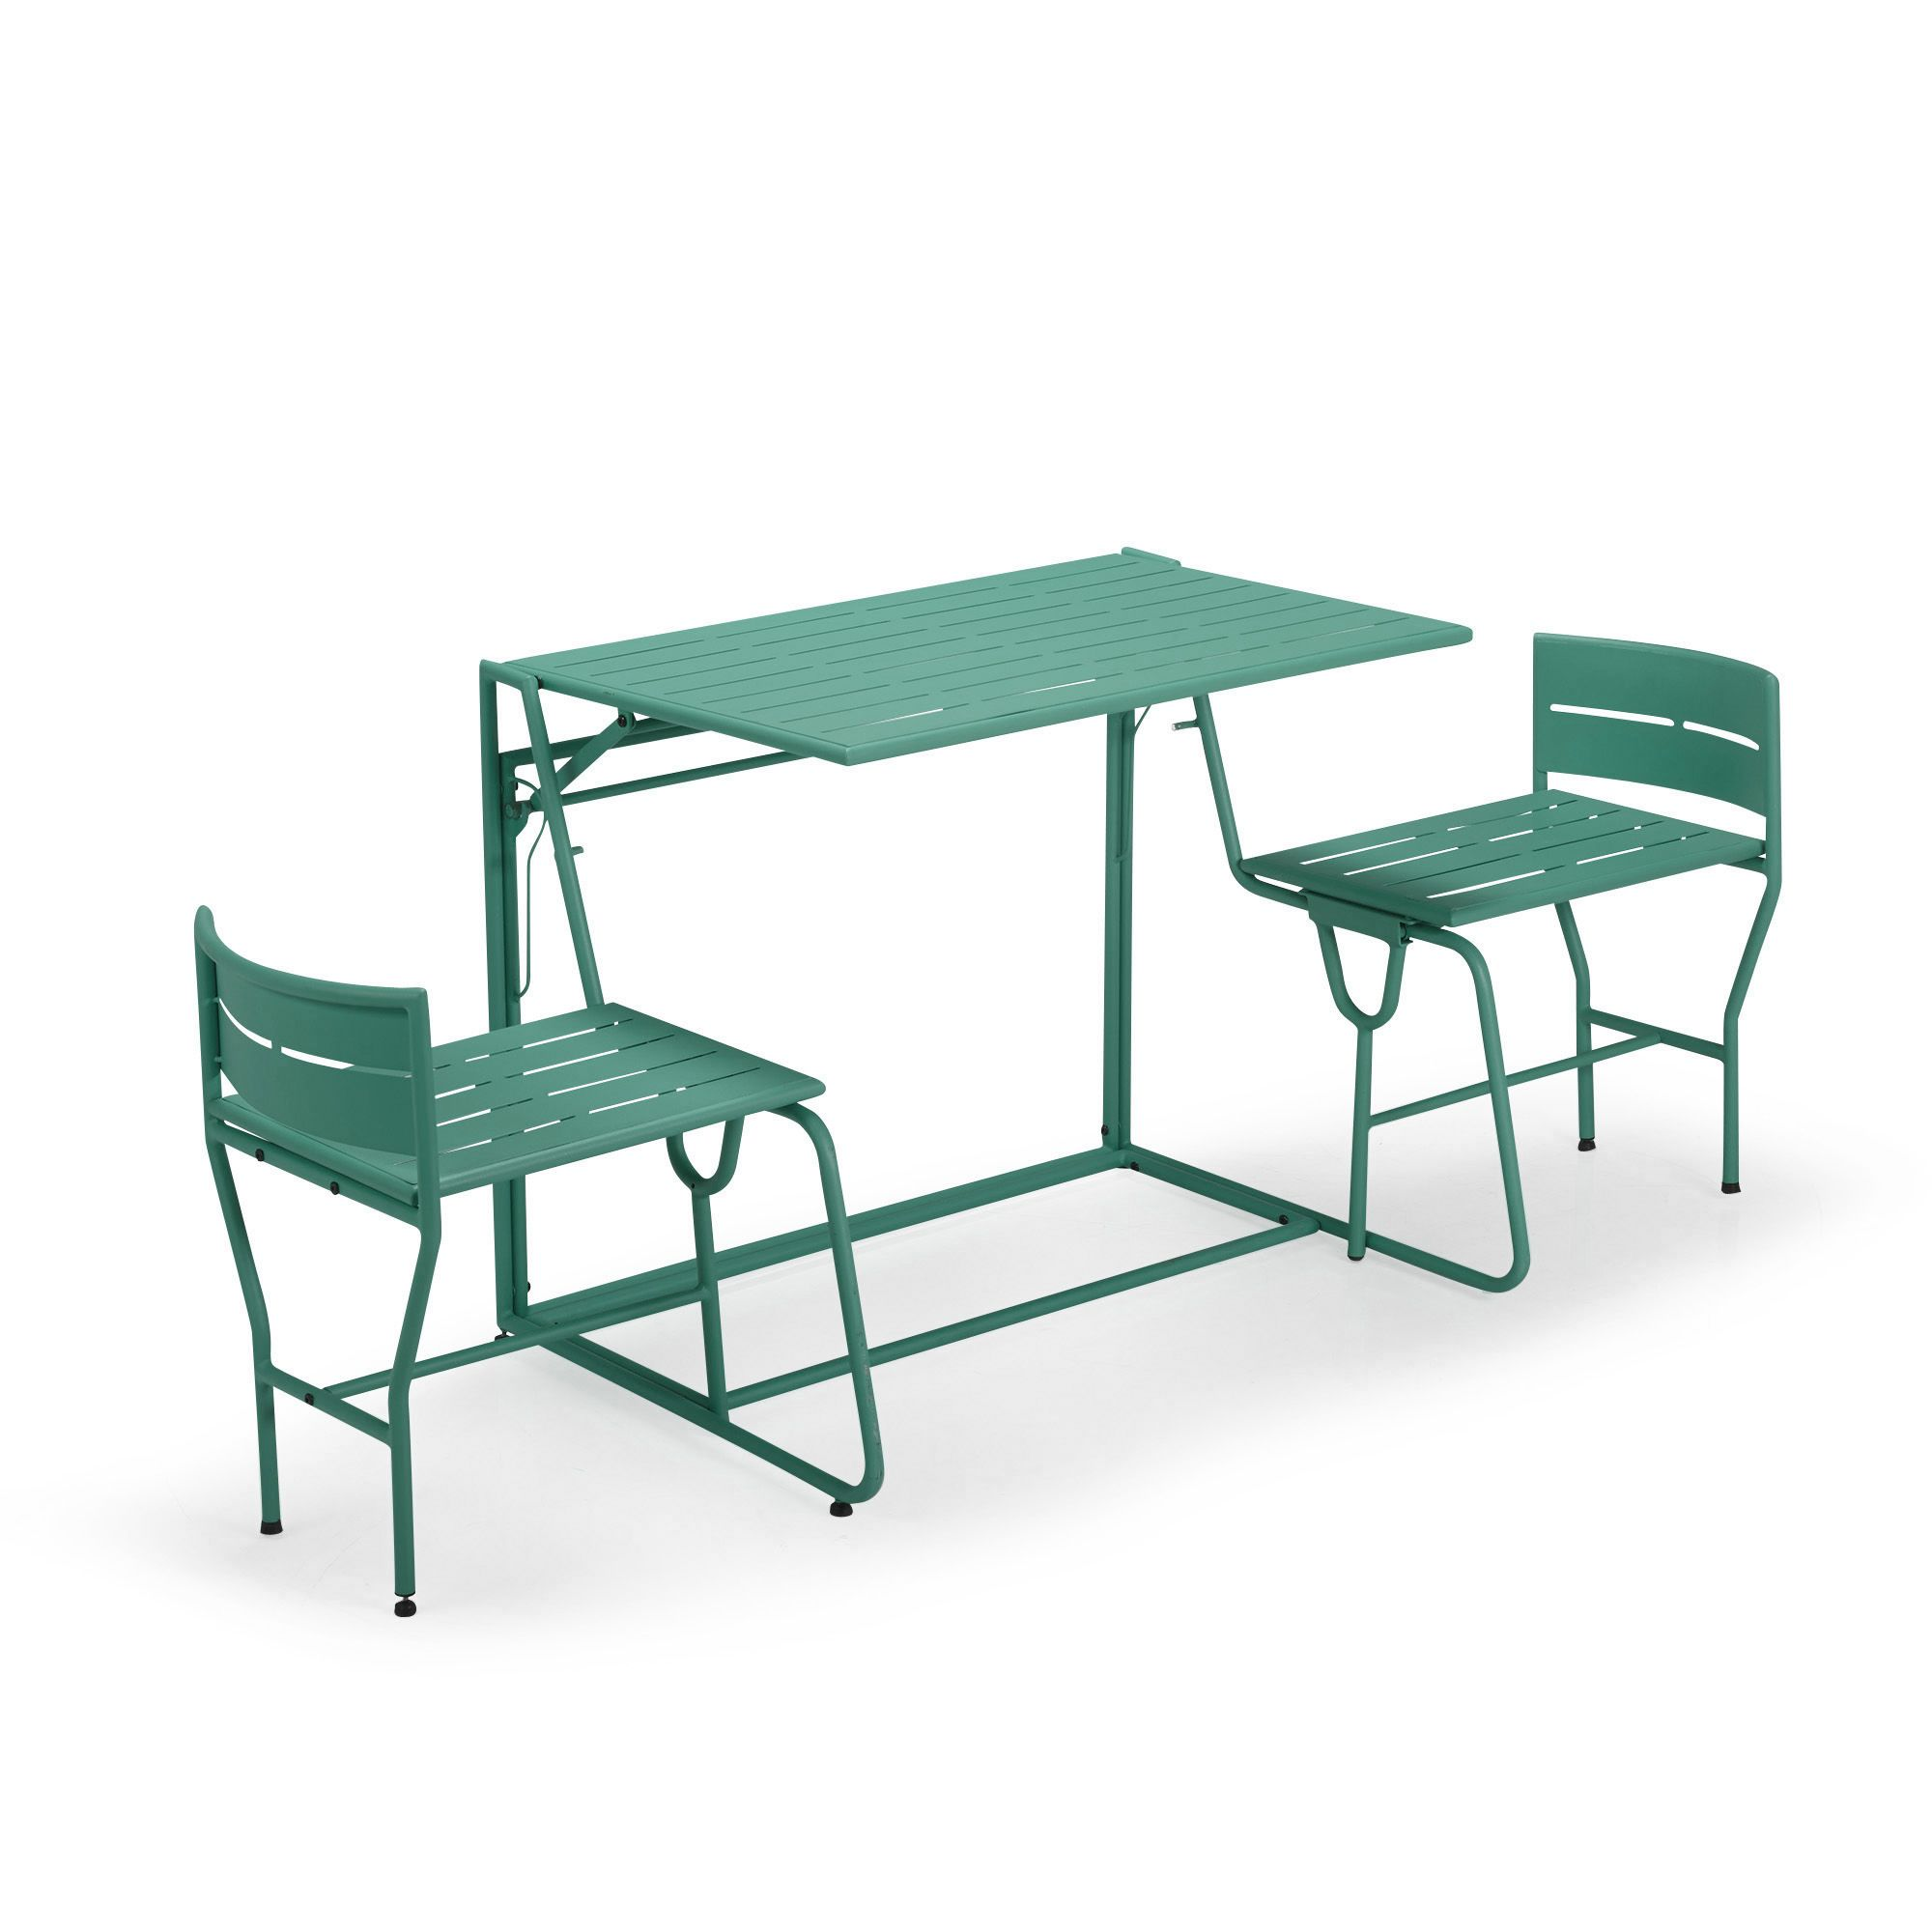 Tables De Salon Alinea Picnic Le Salon De Jardin Balcon Transformable 2 En 1